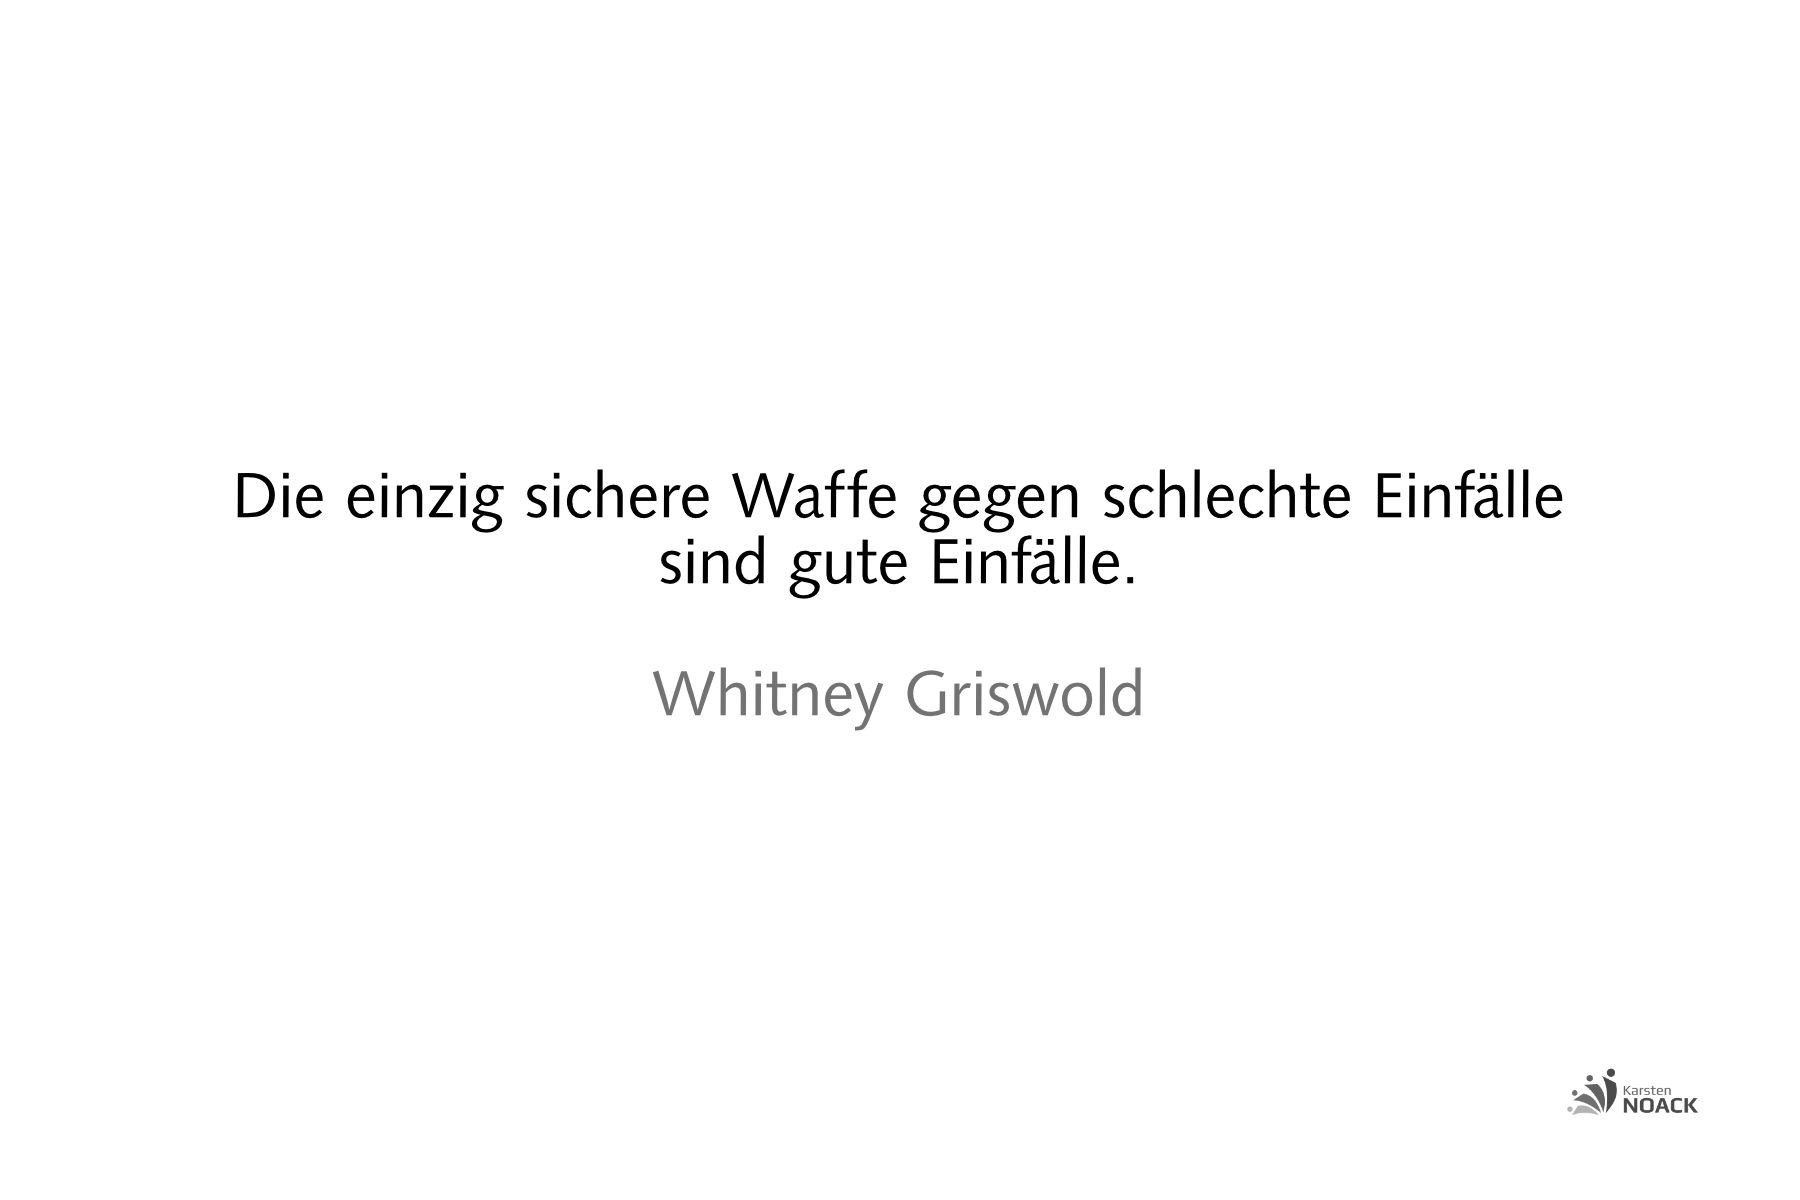 Die einzig sichere Waffe gegen schlechte Einfälle sind gute Einfälle. (The only sure weapon against bad ideas is better ideas.) Whitney Griswold